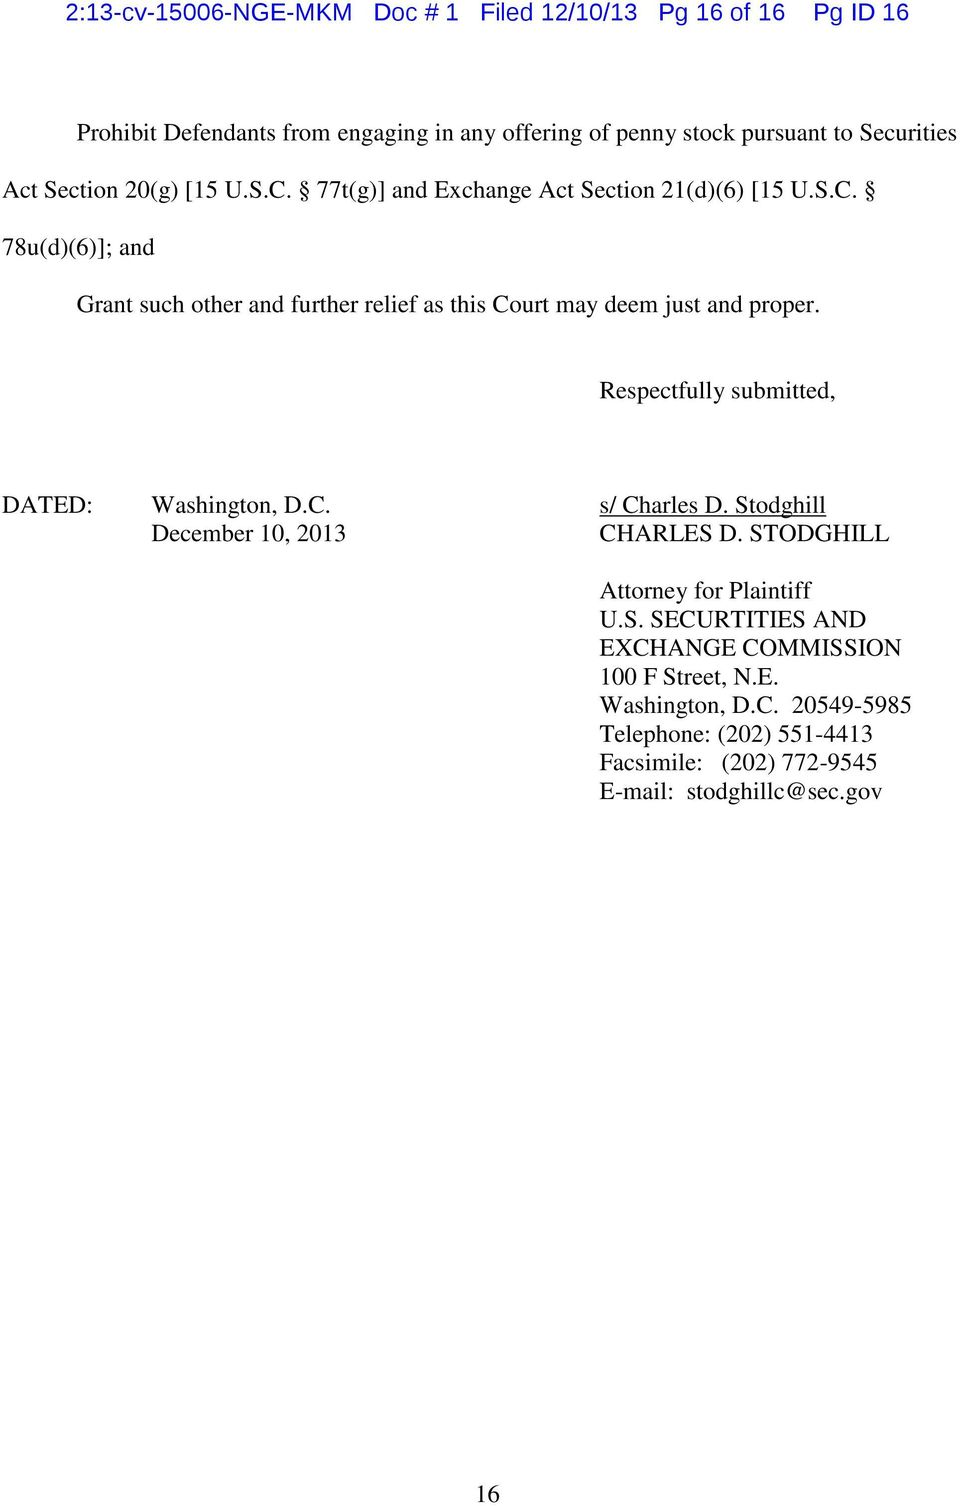 Respectfully submitted, DATED: Washington, D.C. s/ Charles D. Stodghill December 10, 2013 CHARLES D. STODGHILL Attorney for Plaintiff U.S. SECURTITIES AND EXCHANGE COMMISSION 100 F Street, N.